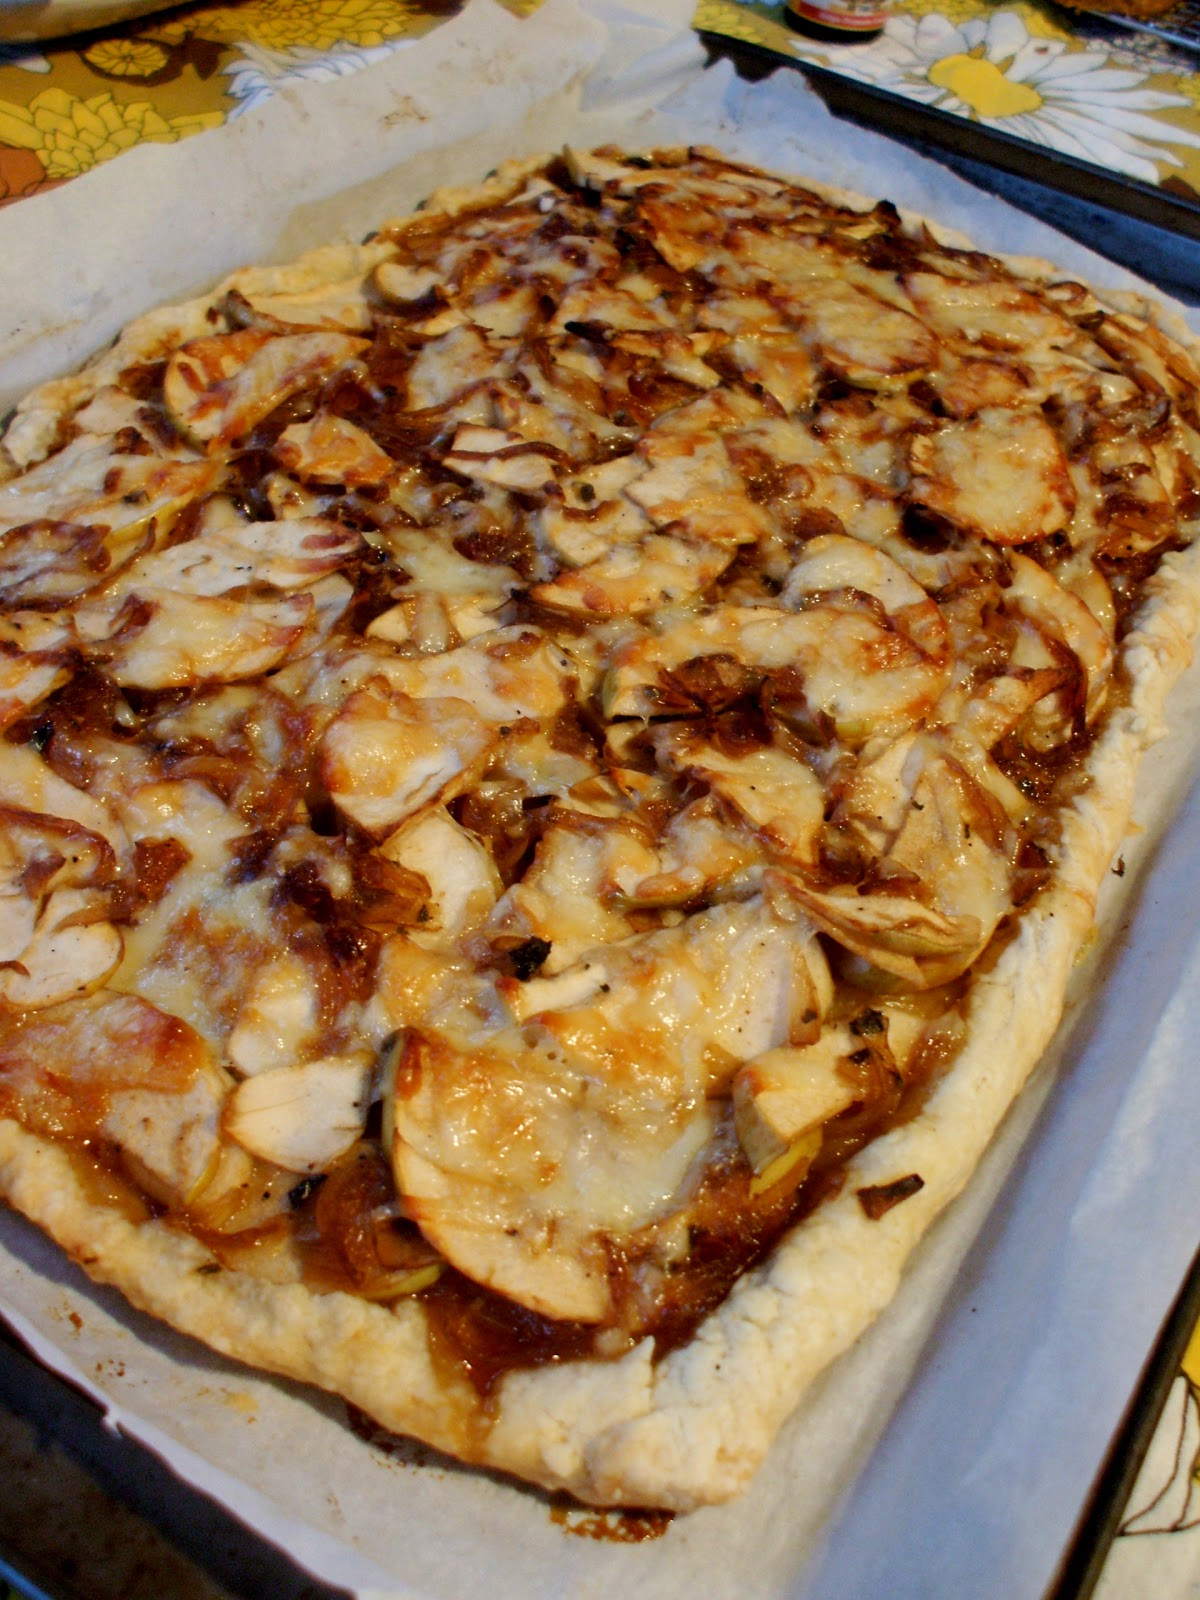 ... House: Savory Apple Tart with Caramelized Onions, Gruyere, and Sage